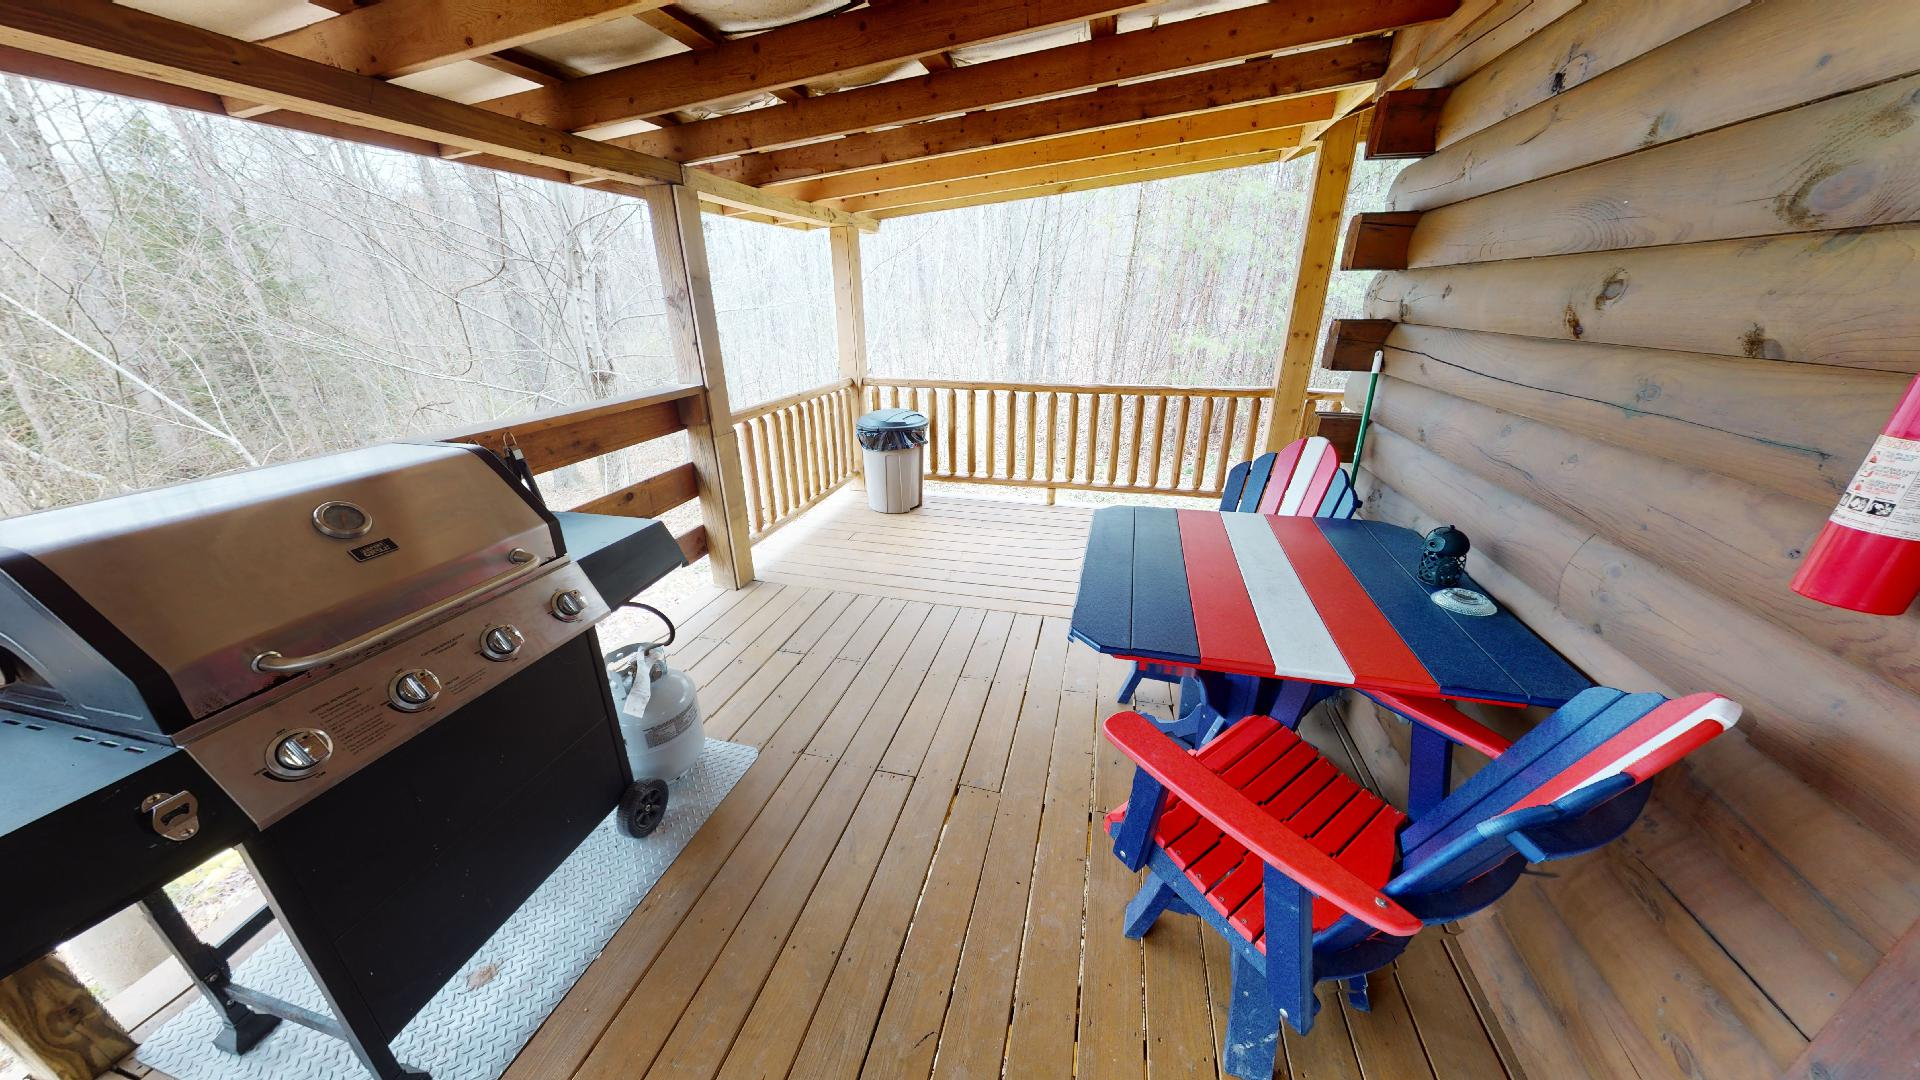 Photo 663_9187.jpg - Propane grill and outdoor seating.